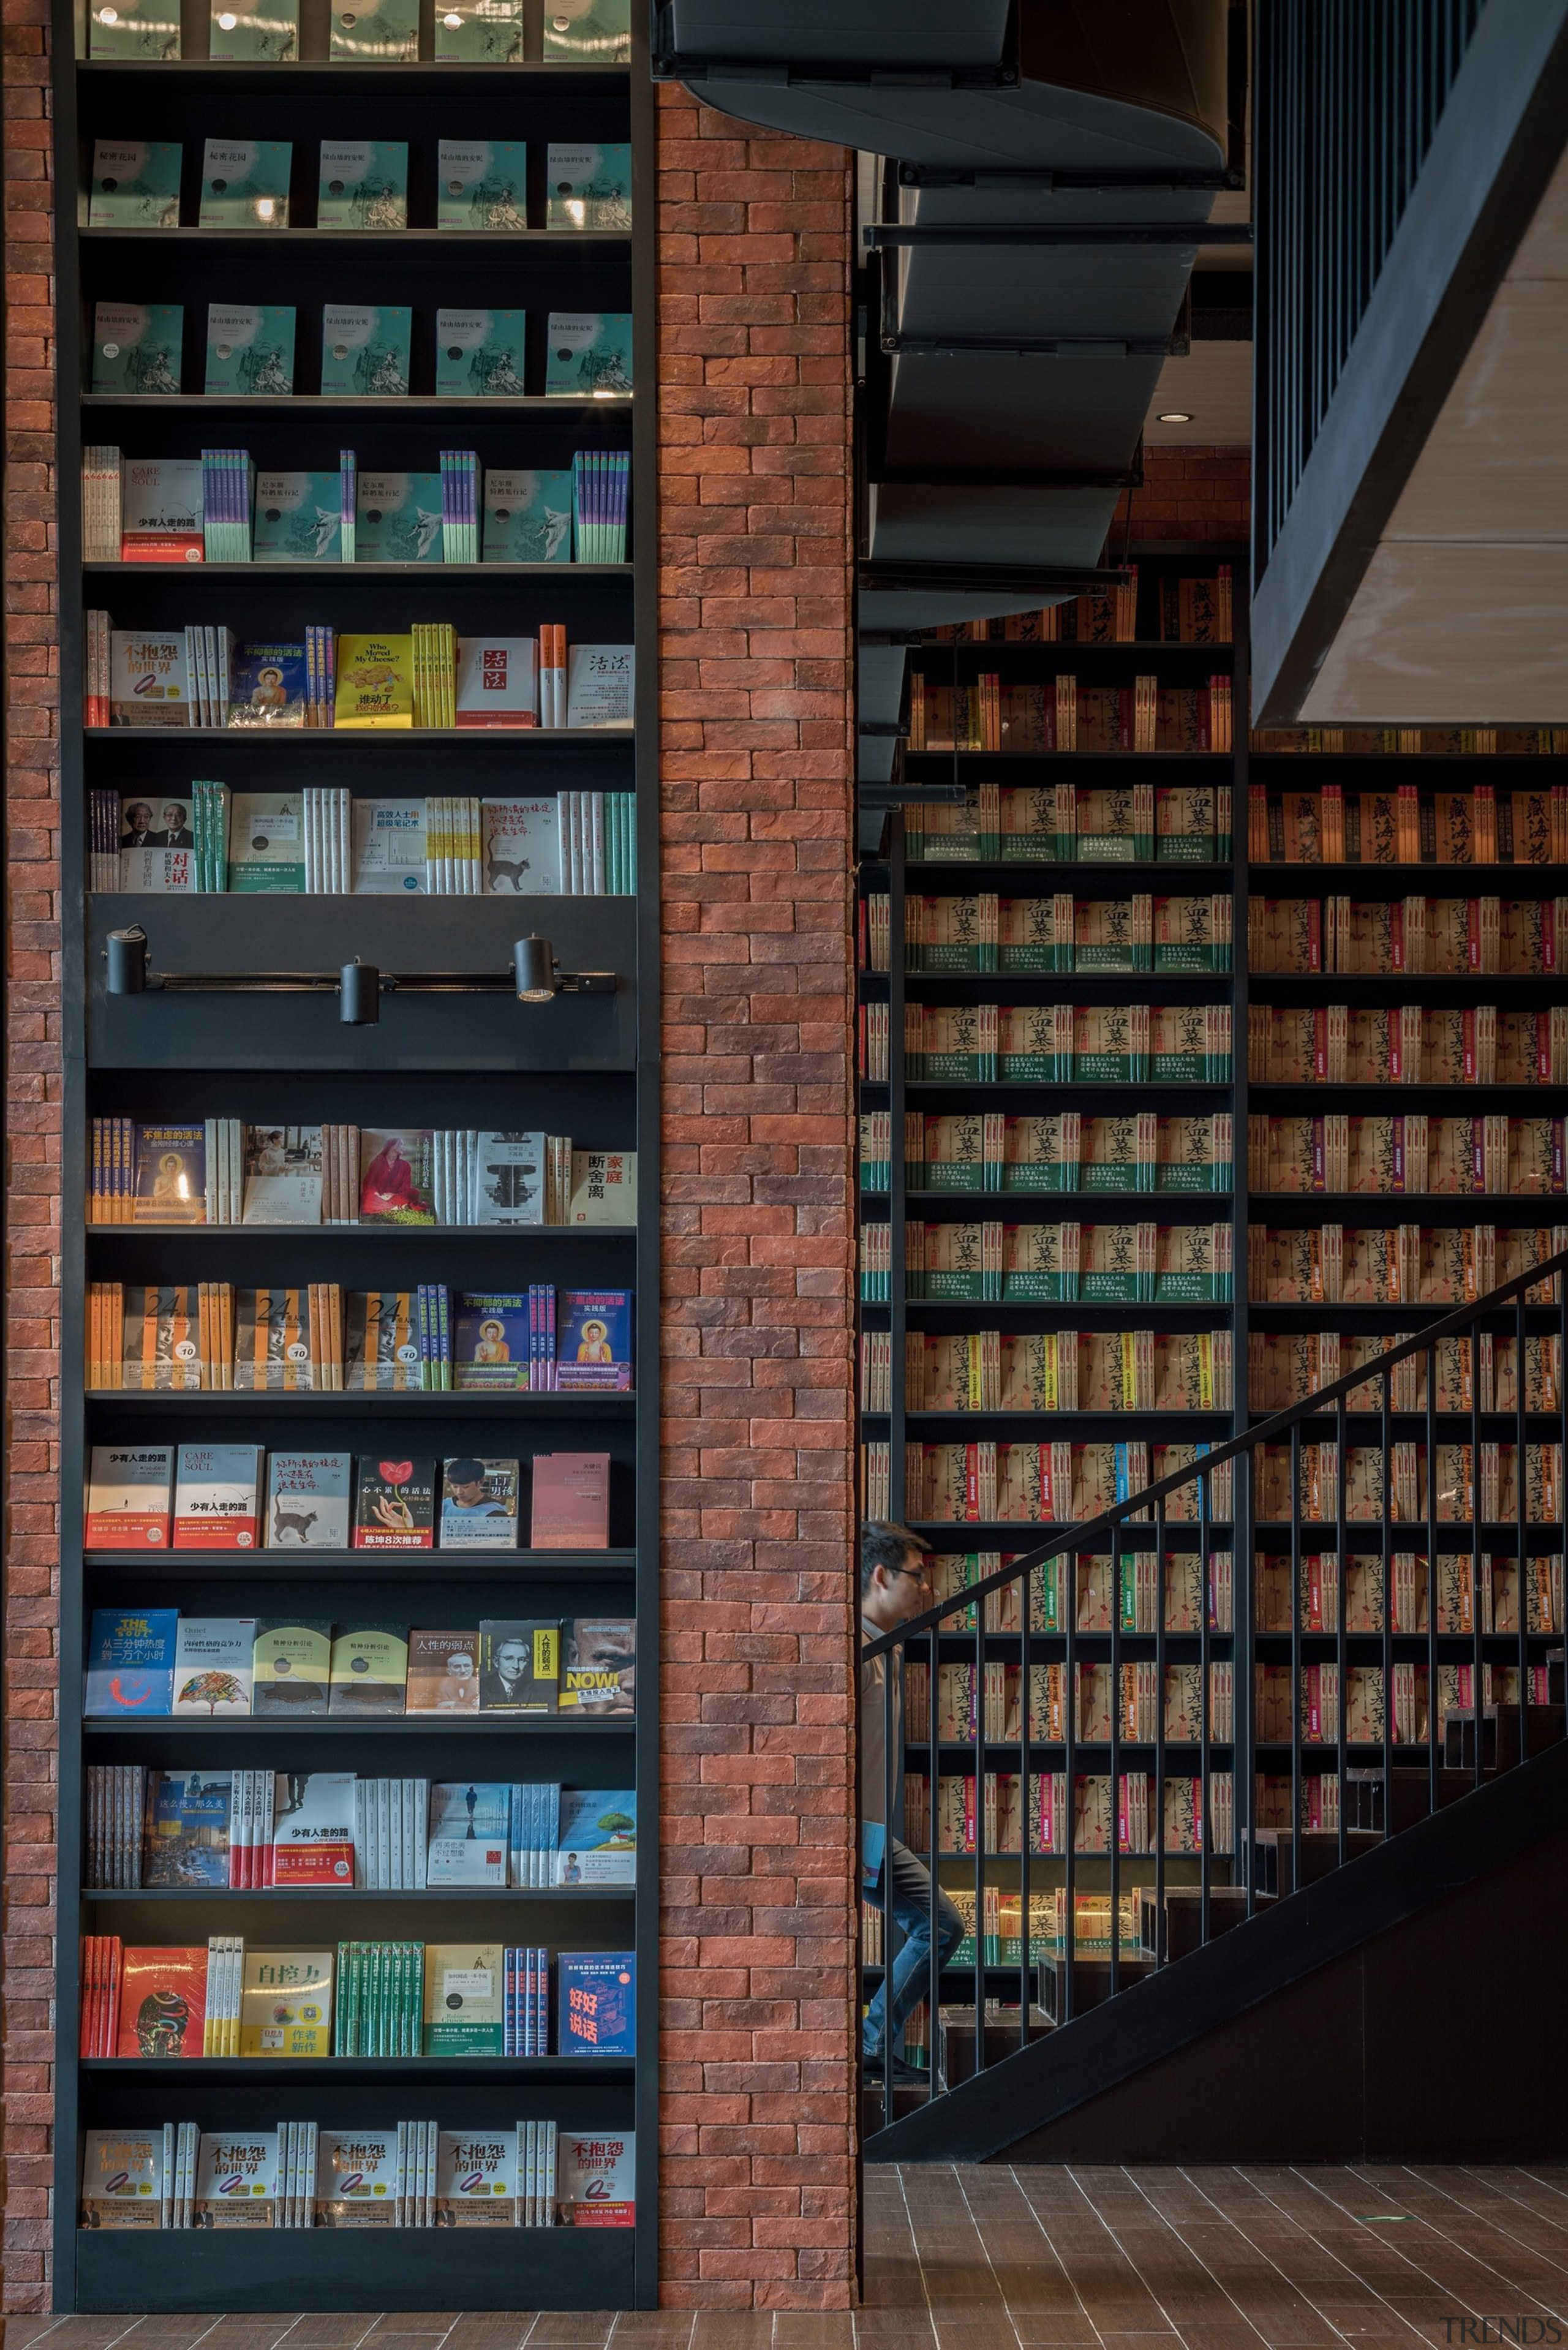 Architect: X+LivingPhotography by Shao Feng bookcase, building, library, public library, shelving, black